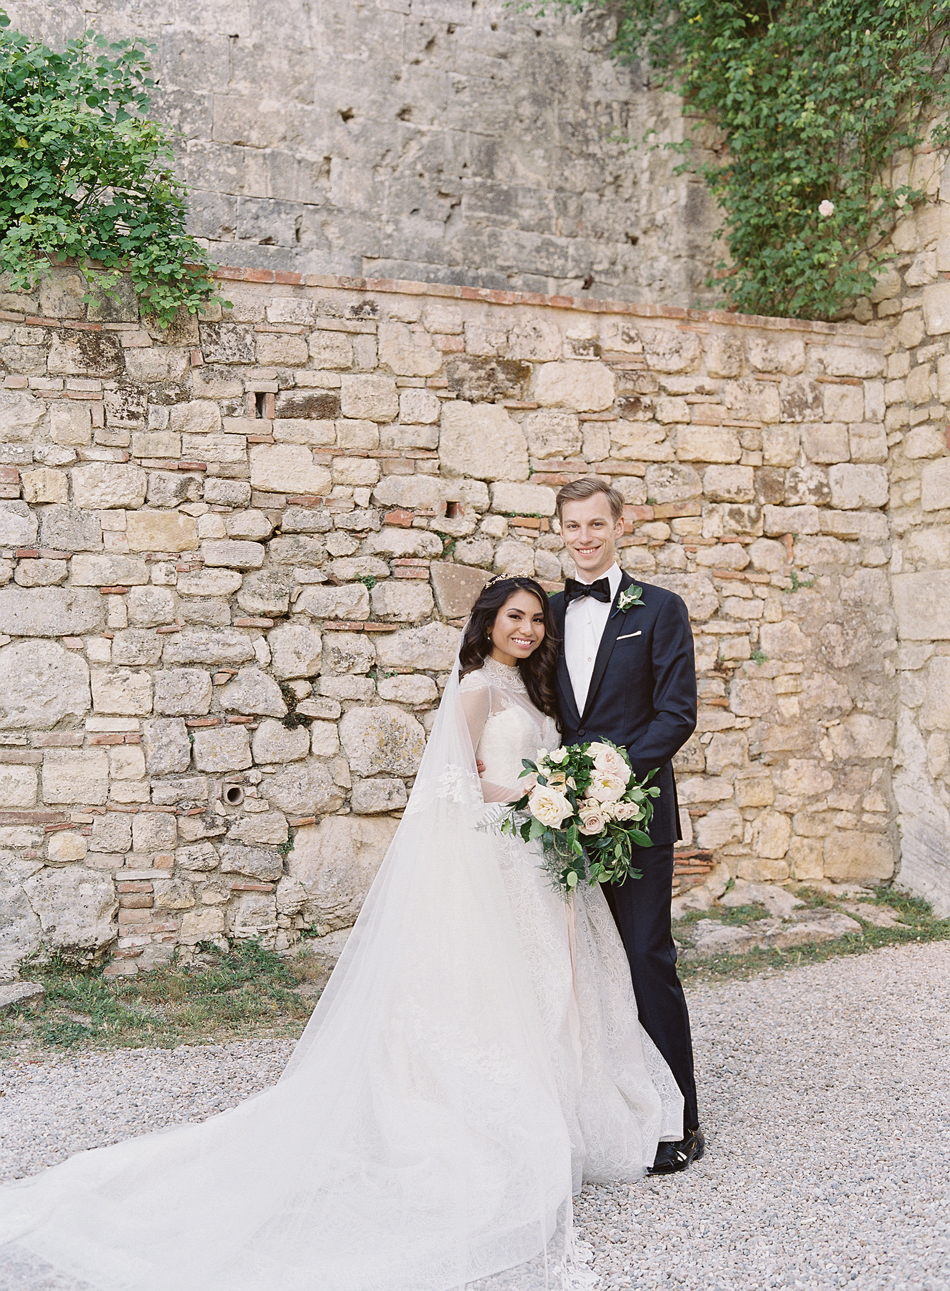 This Couple Chose A Soft Color Palette For Their Elegant Wedding